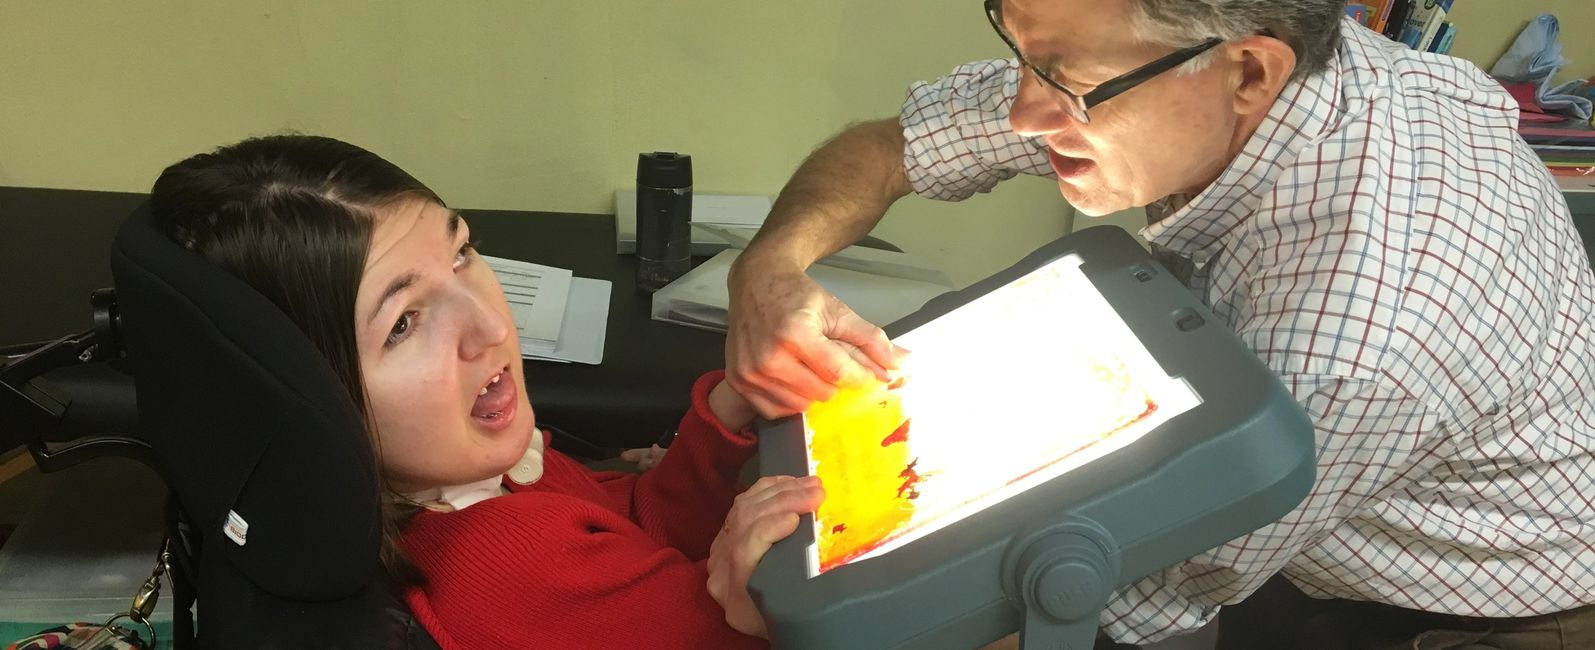 photo of vision specialist assisting  student to touch a device with a lit screen